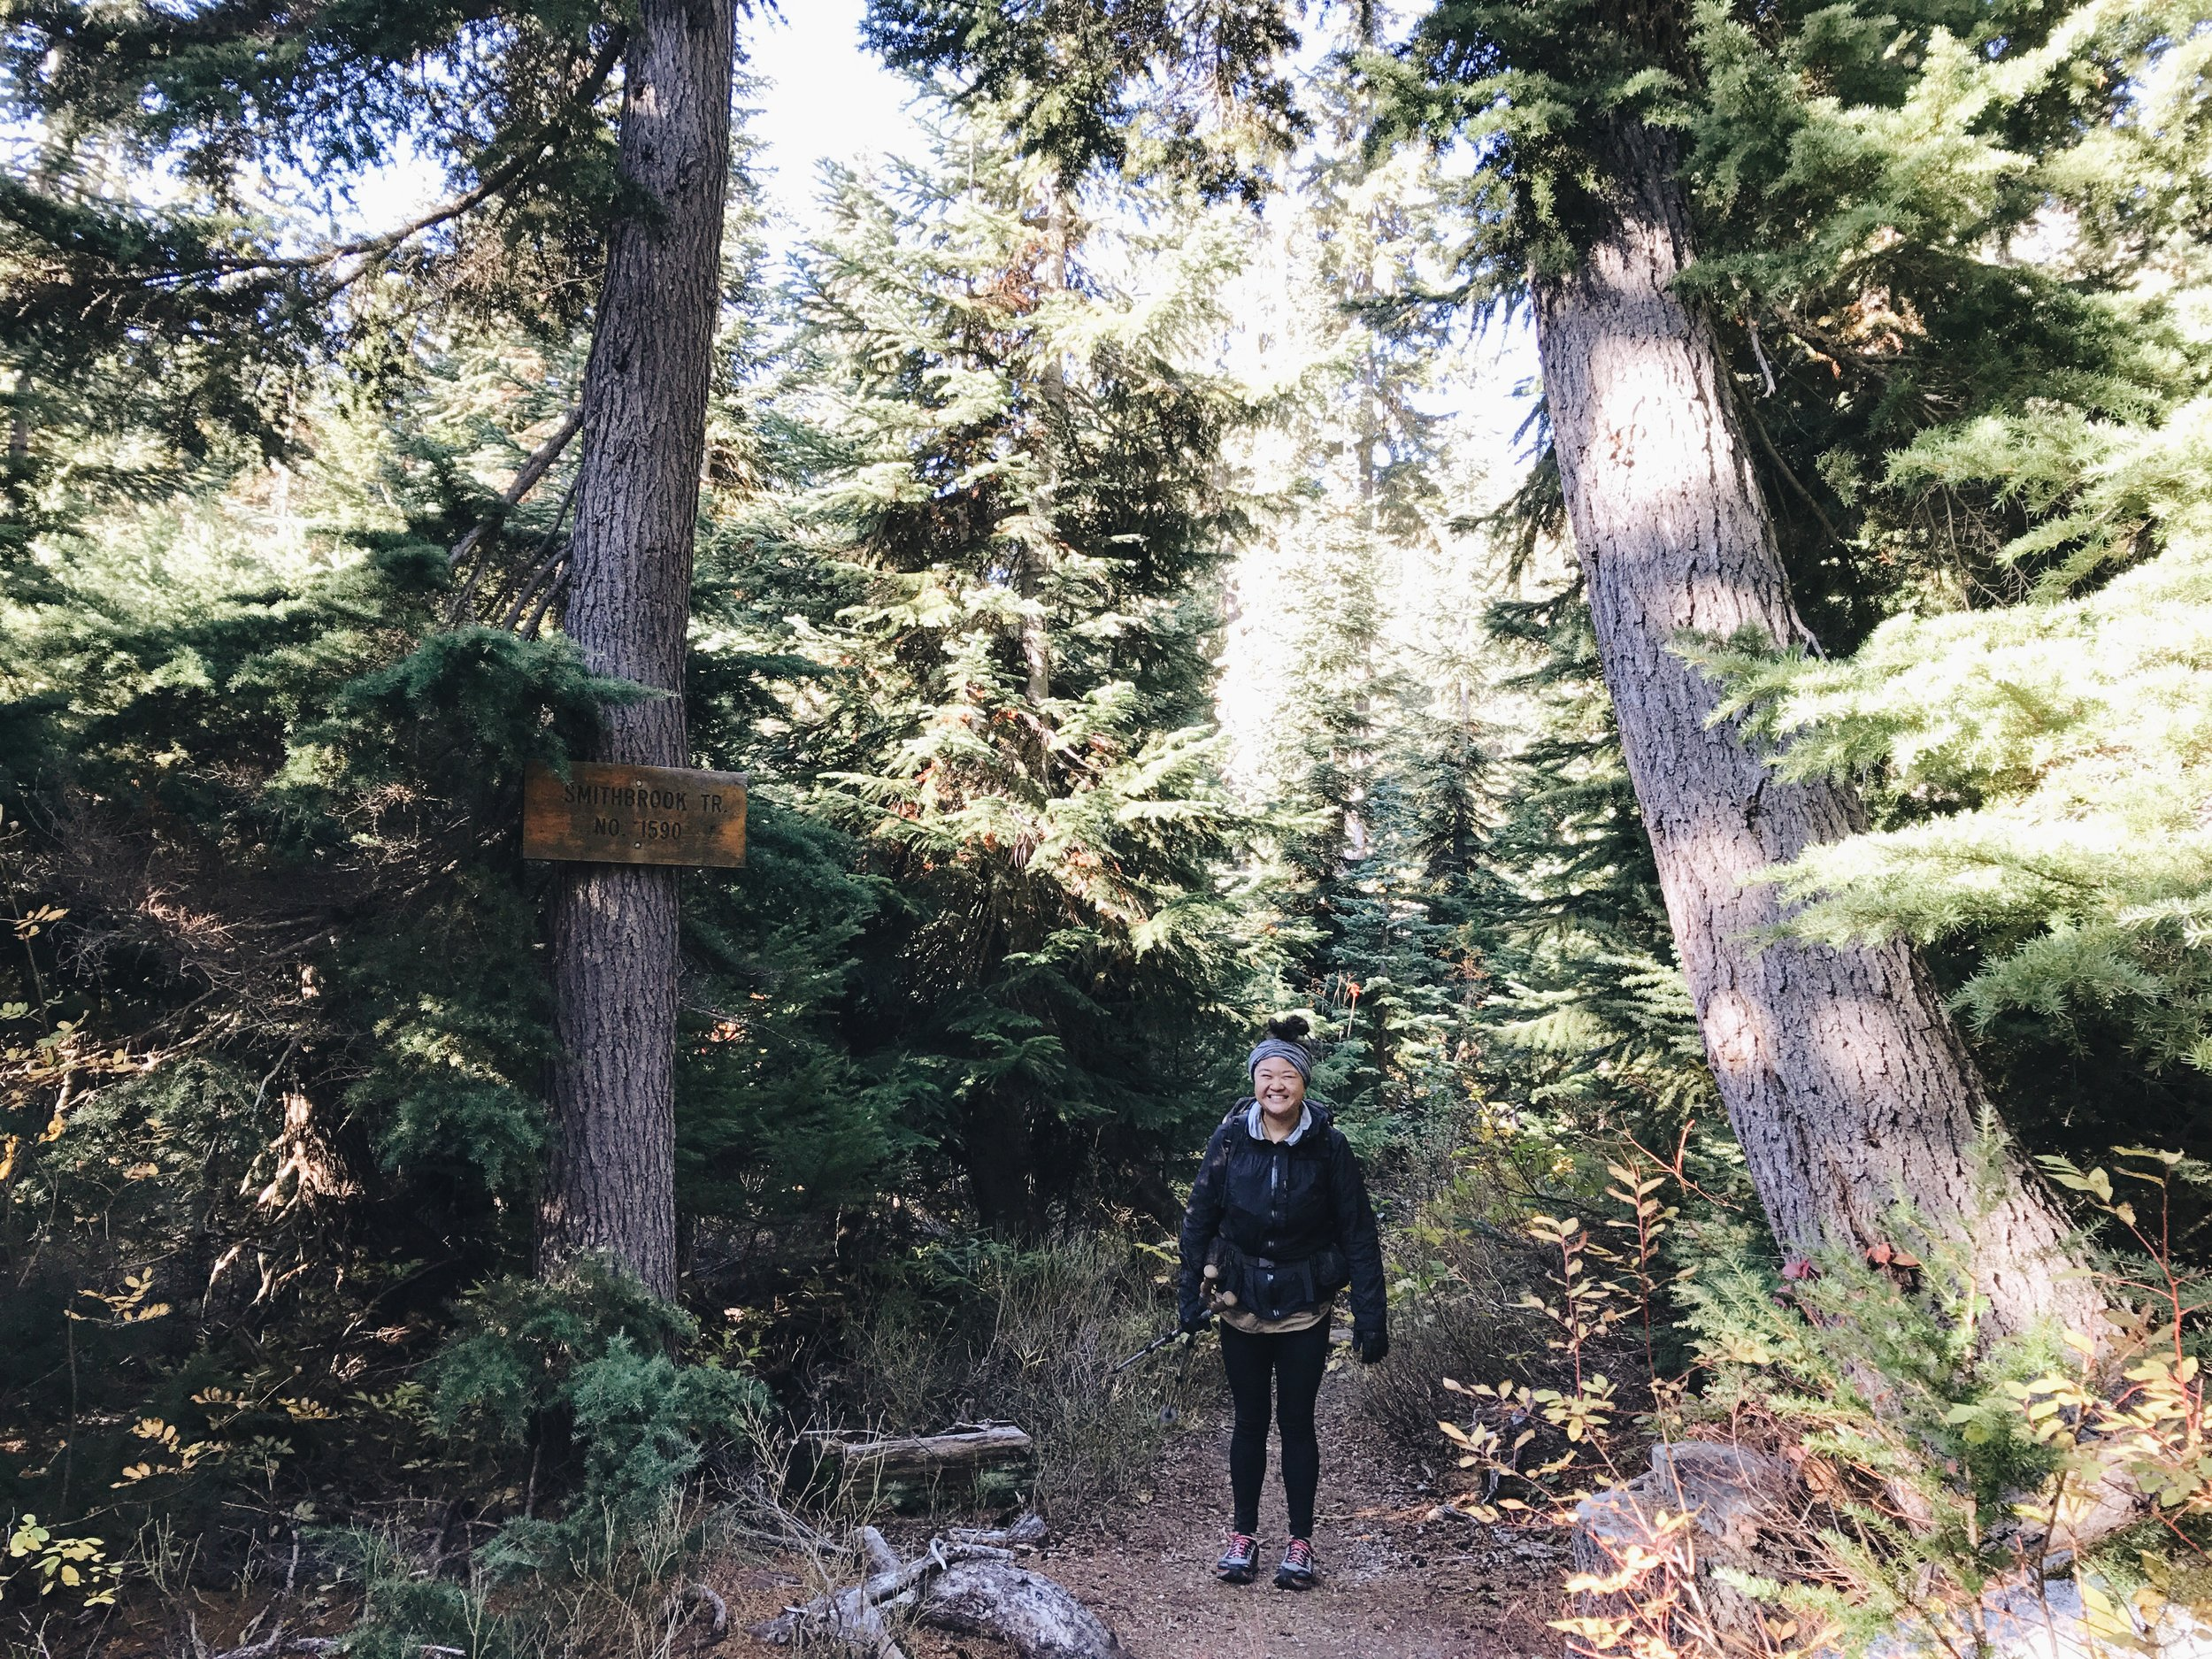 Sept 2016, I hiked on the PCT for the first time after injury outside of Stevens. Taken by Ariana.